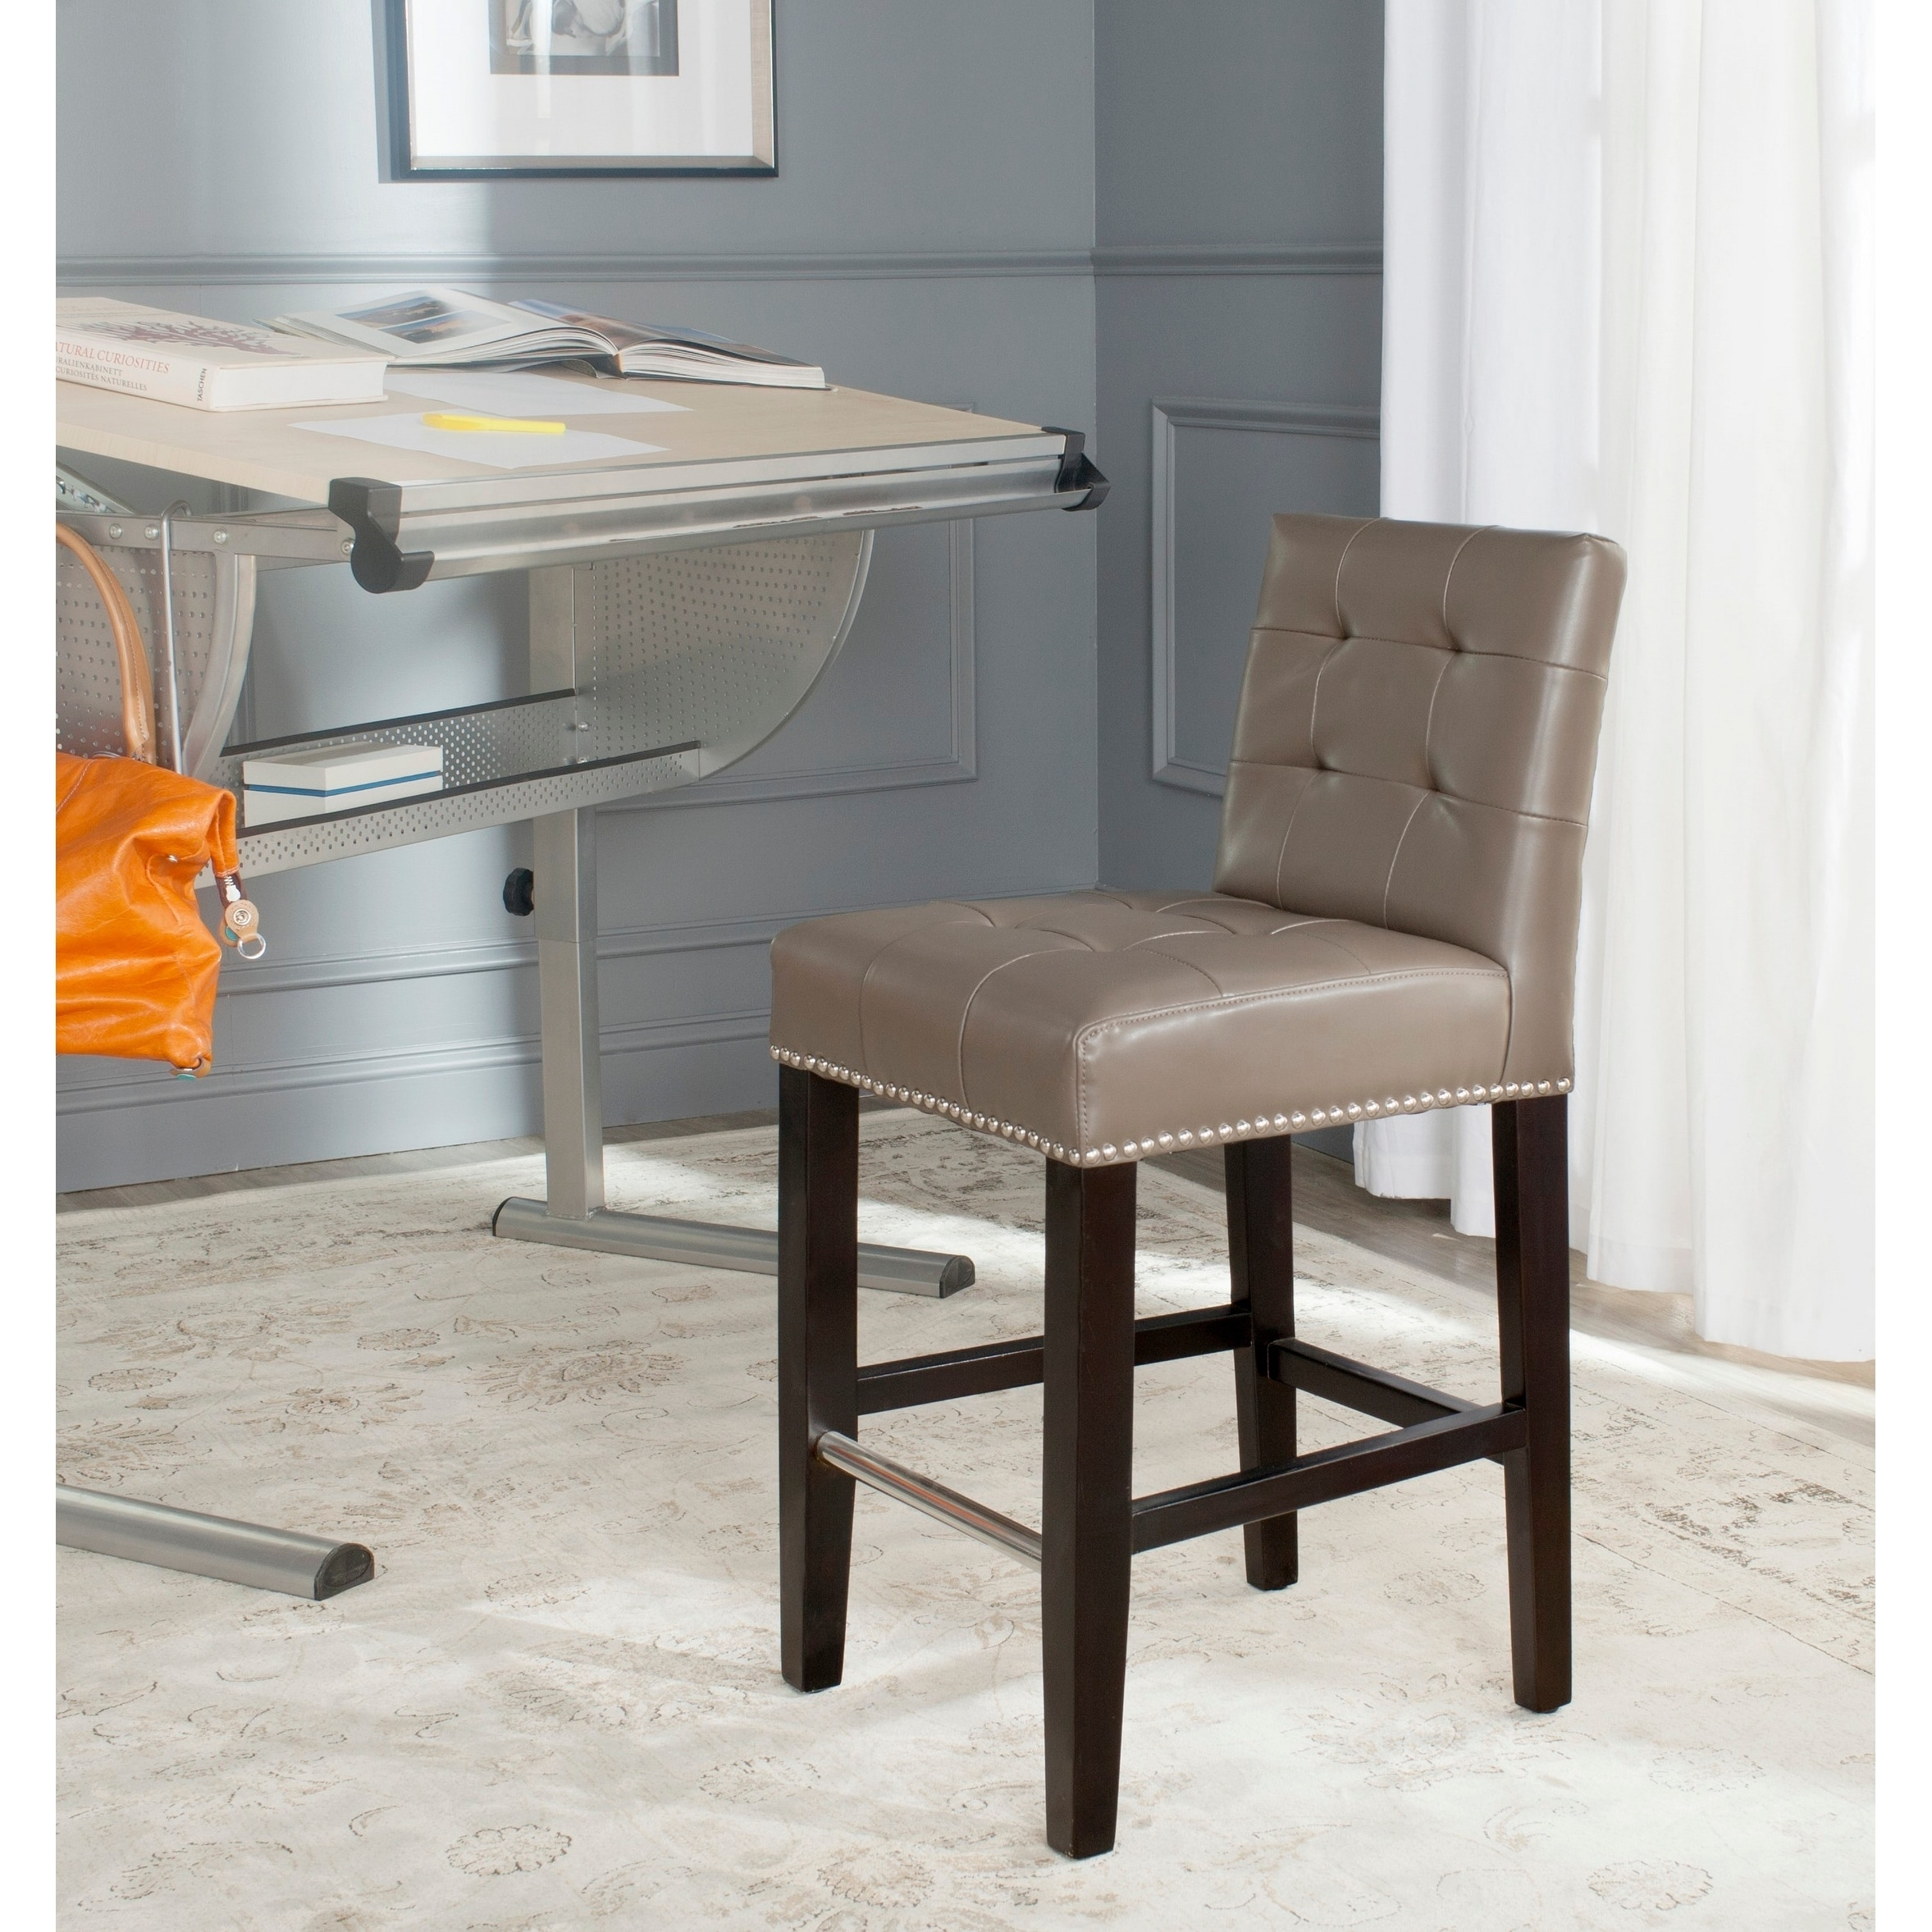 c6a848c329f Details about Safavieh Thompson Clay 26-inch Counter Stool